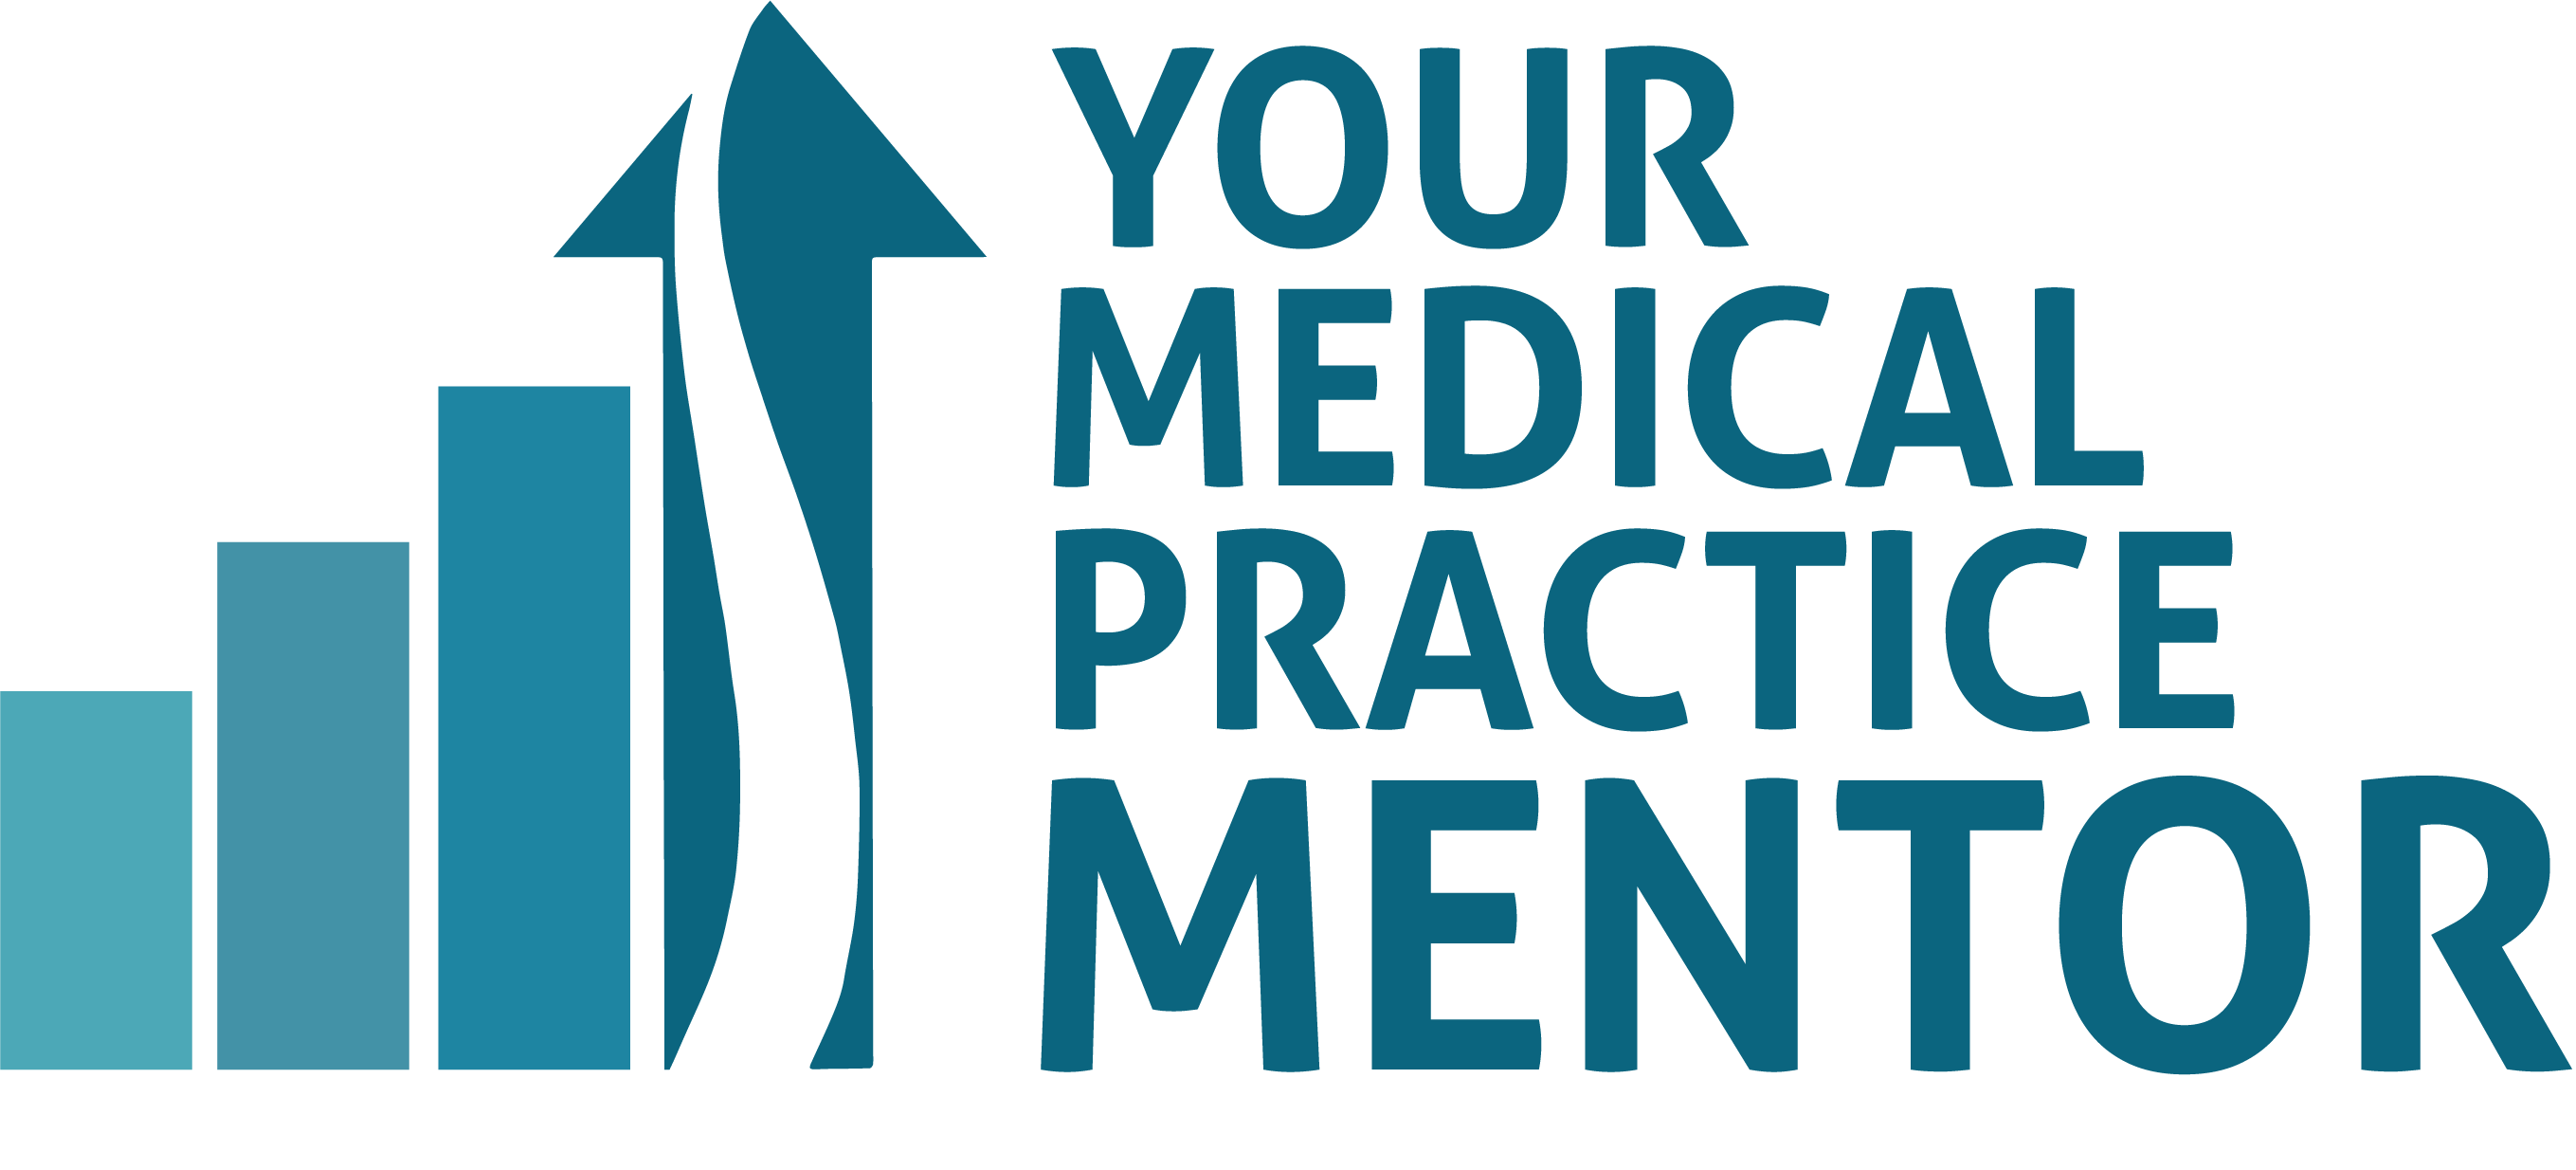 Your Medical Practice Mentor